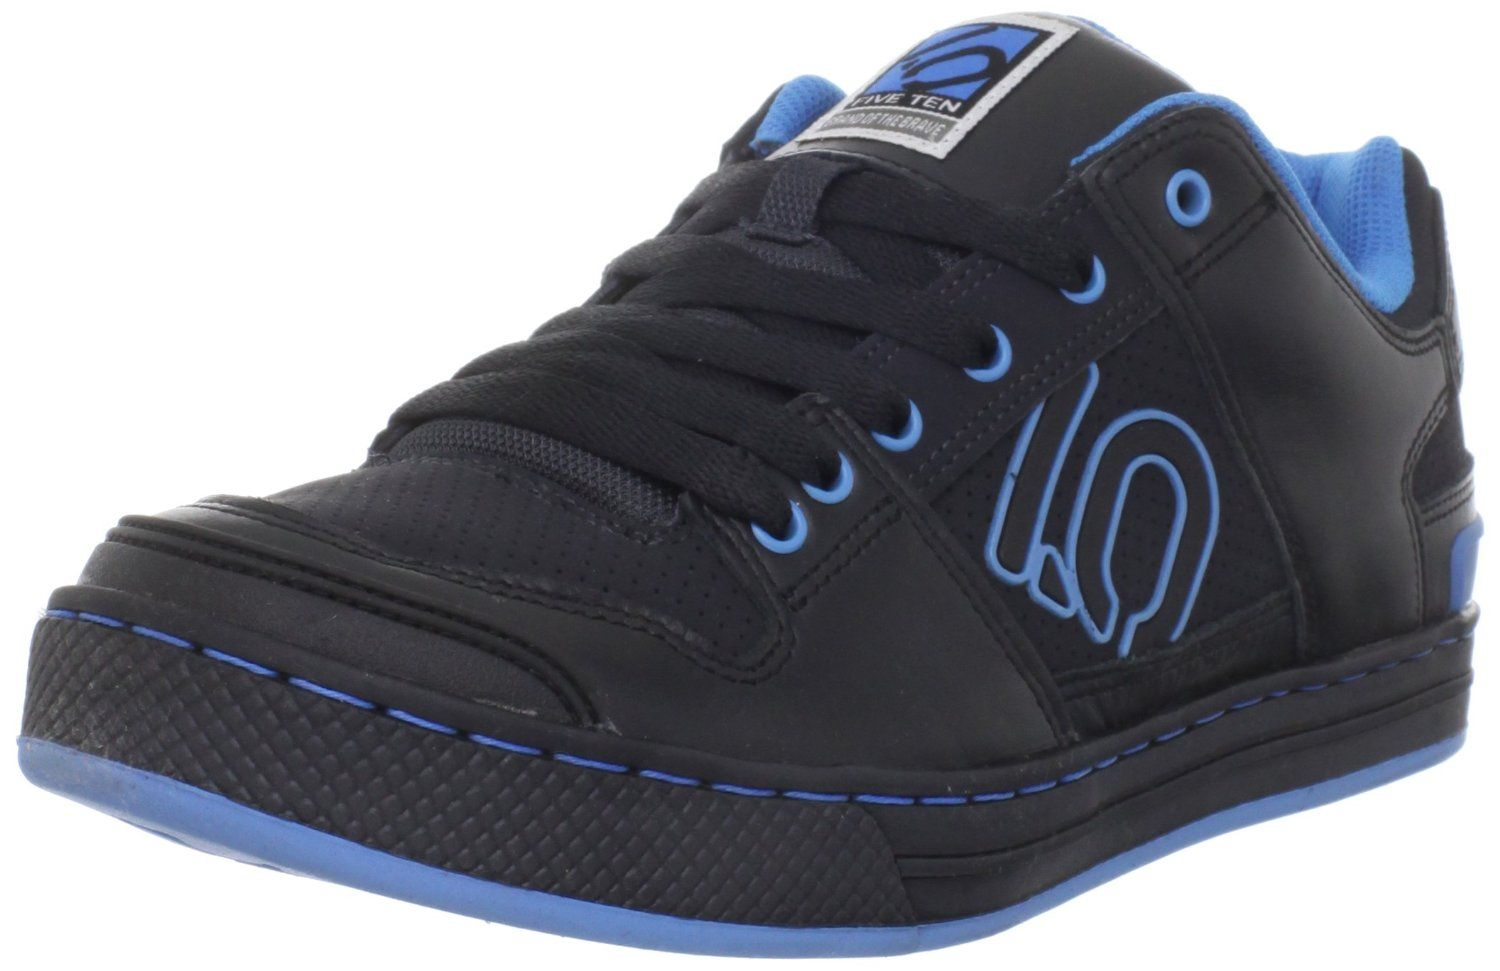 FiveTenn Men's Danny Macaskill Cycling Shoe http